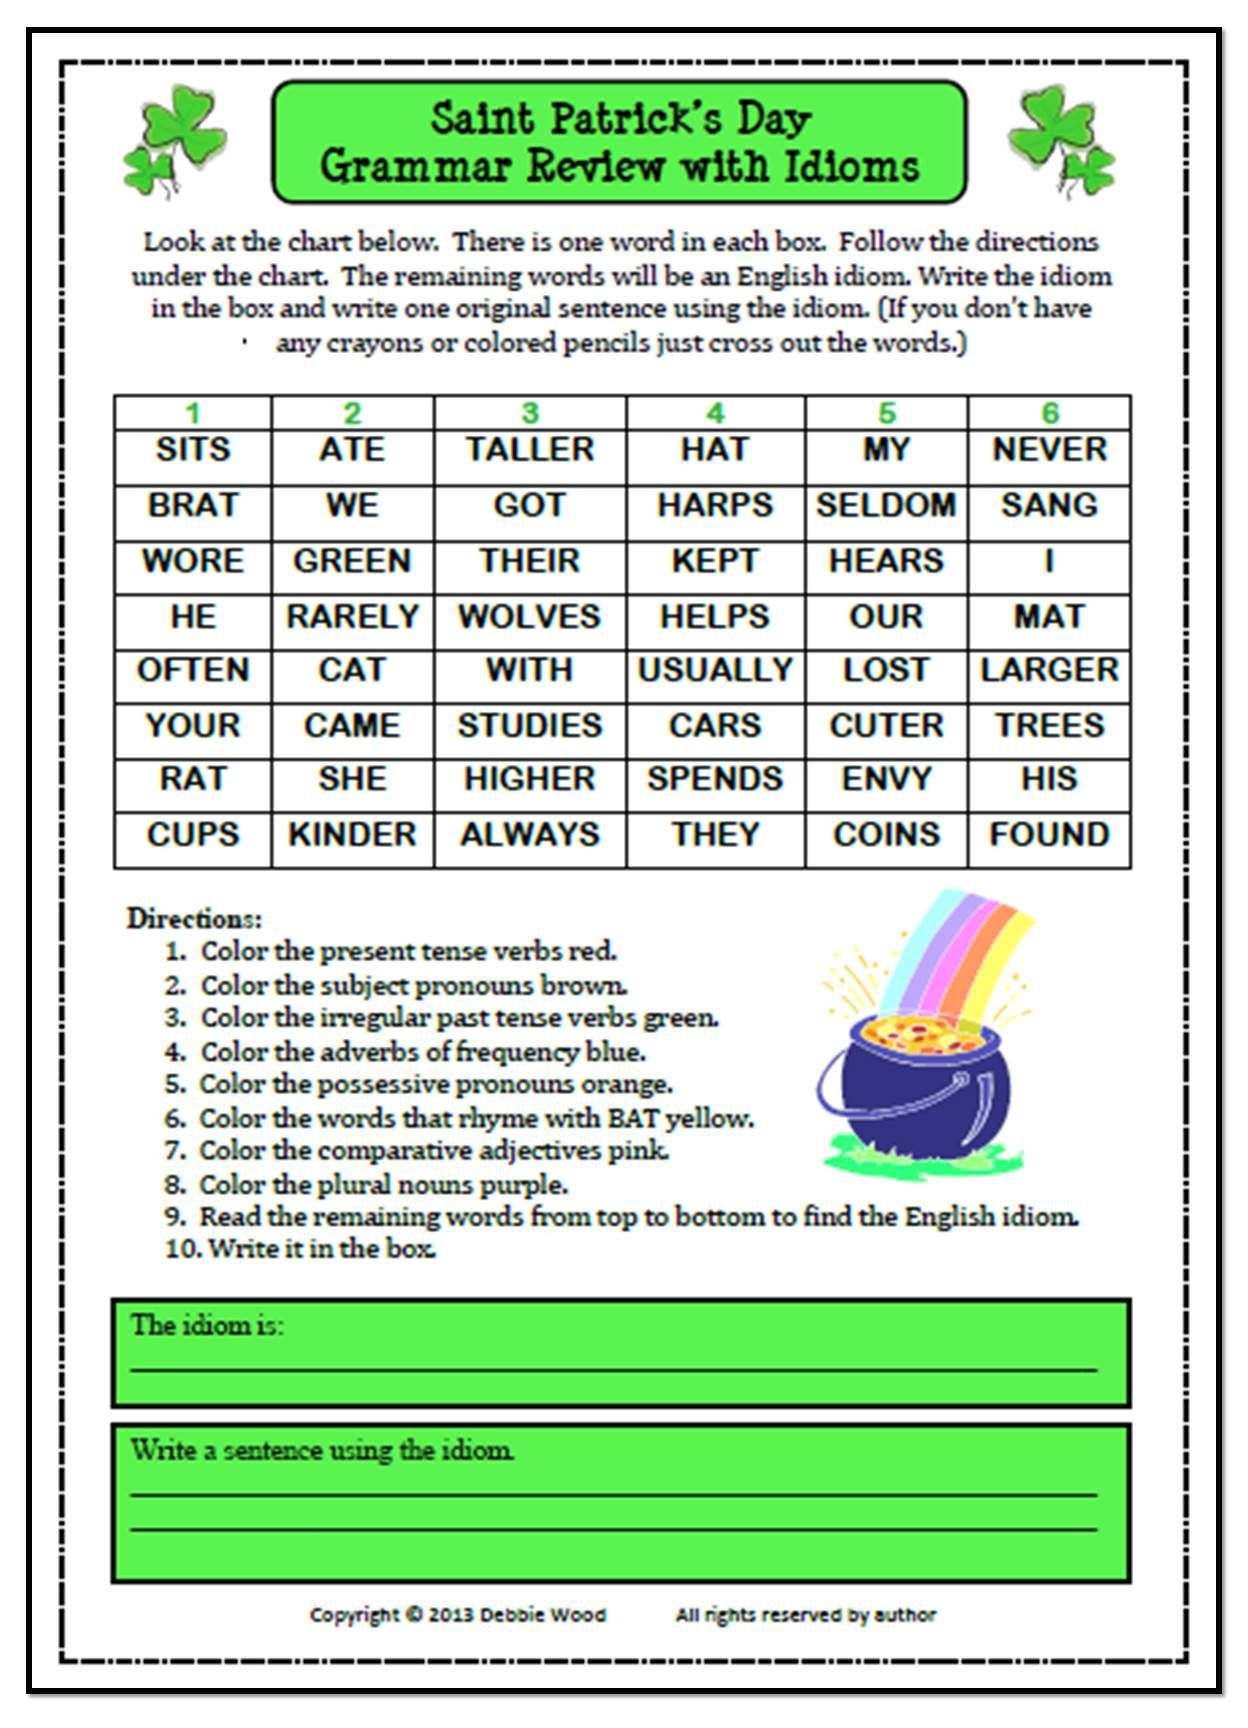 St Patrick S Day Grammar Review